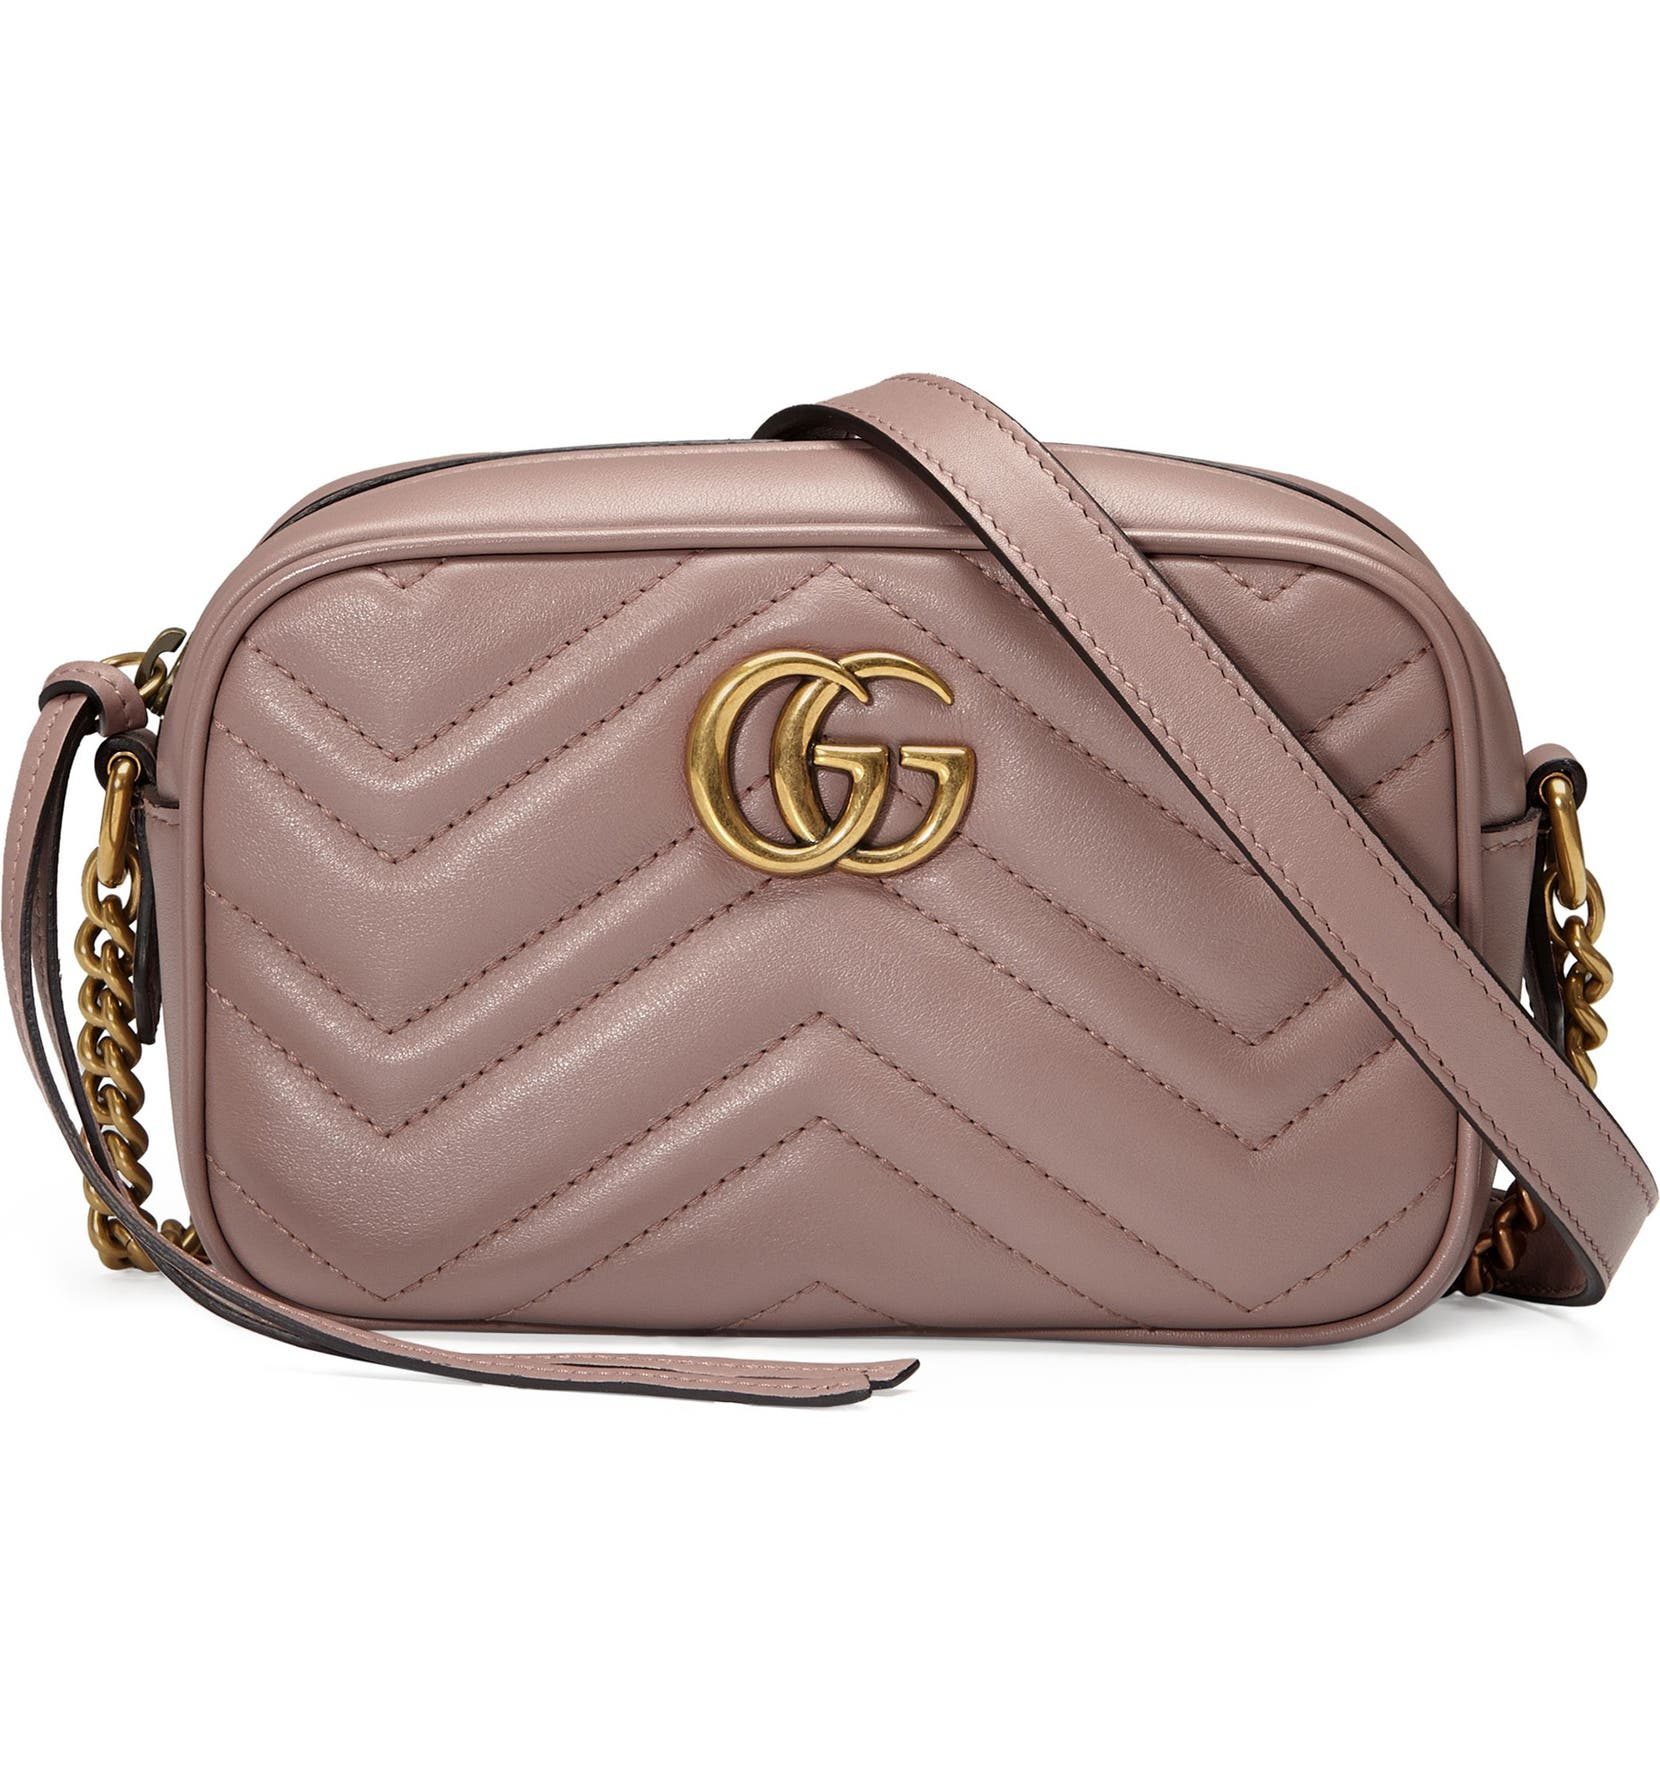 bc2d4d202c3e Gucci GG Marmont 2.0 Matelassé Leather Shoulder Bag | Nordstrom